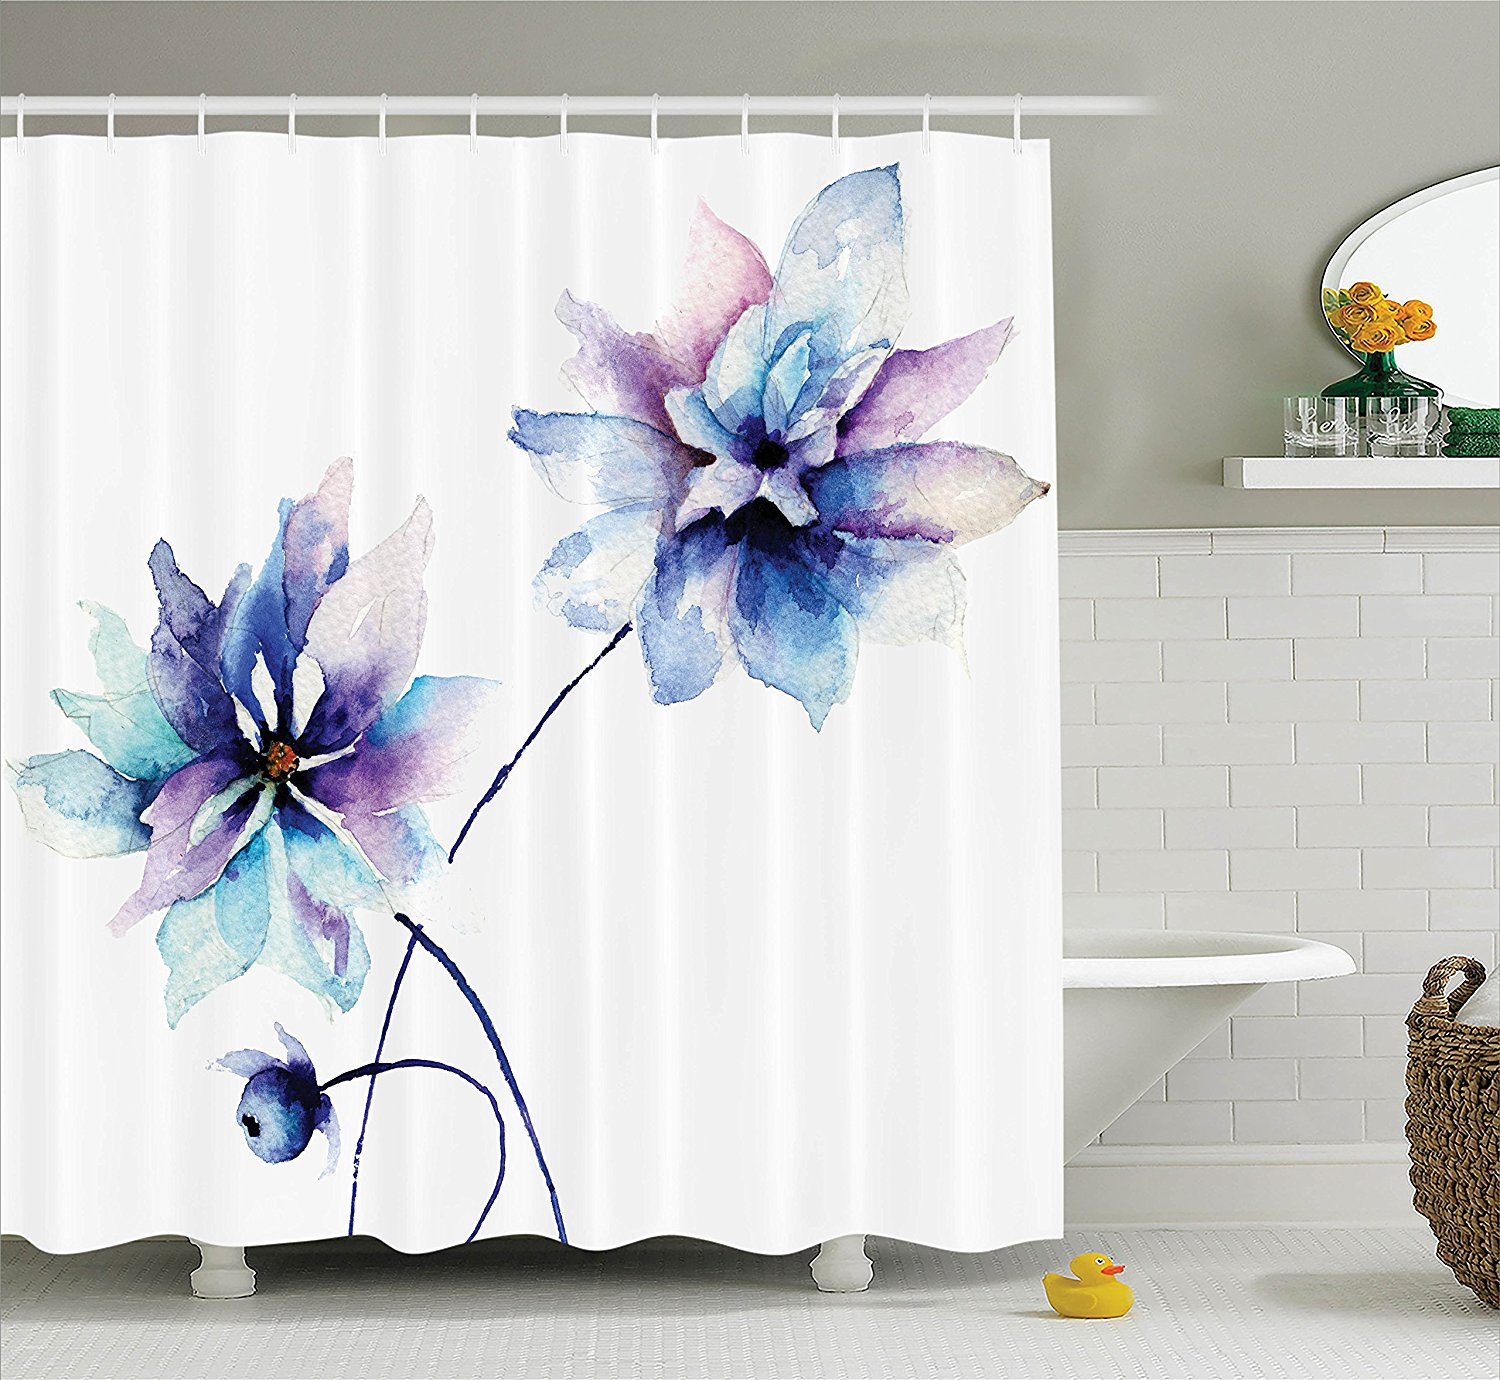 memory home watercolor flower shower curtain elegant flower drawing retro style floral art fabric bathroom decor